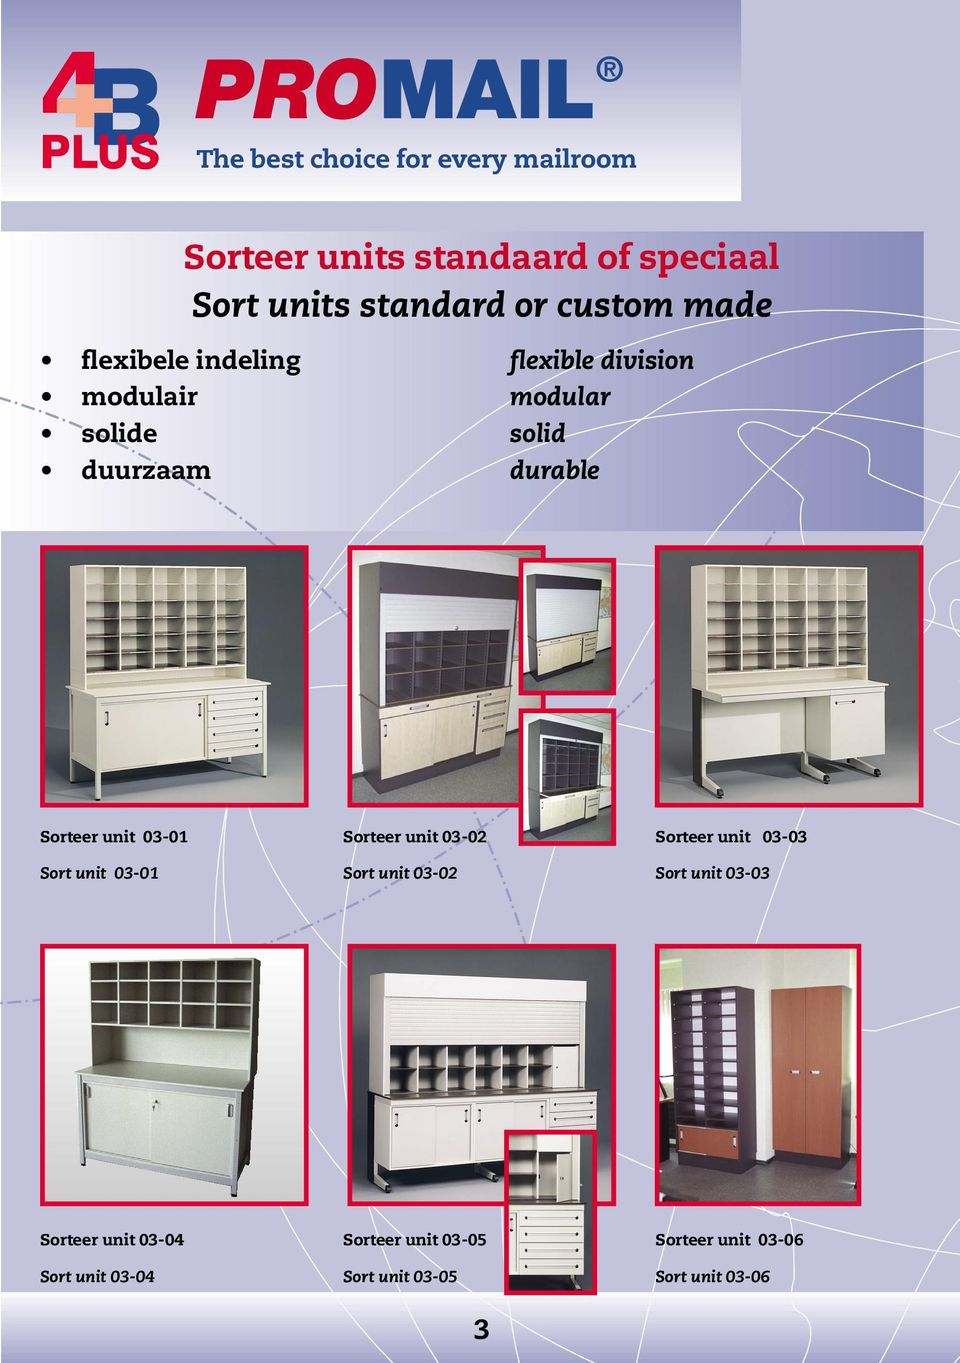 unit 03-02 Sorteer unit 03-03 Sort unit 03-01 Sort unit 03-02 Sort unit 03-03 Sorteer unit